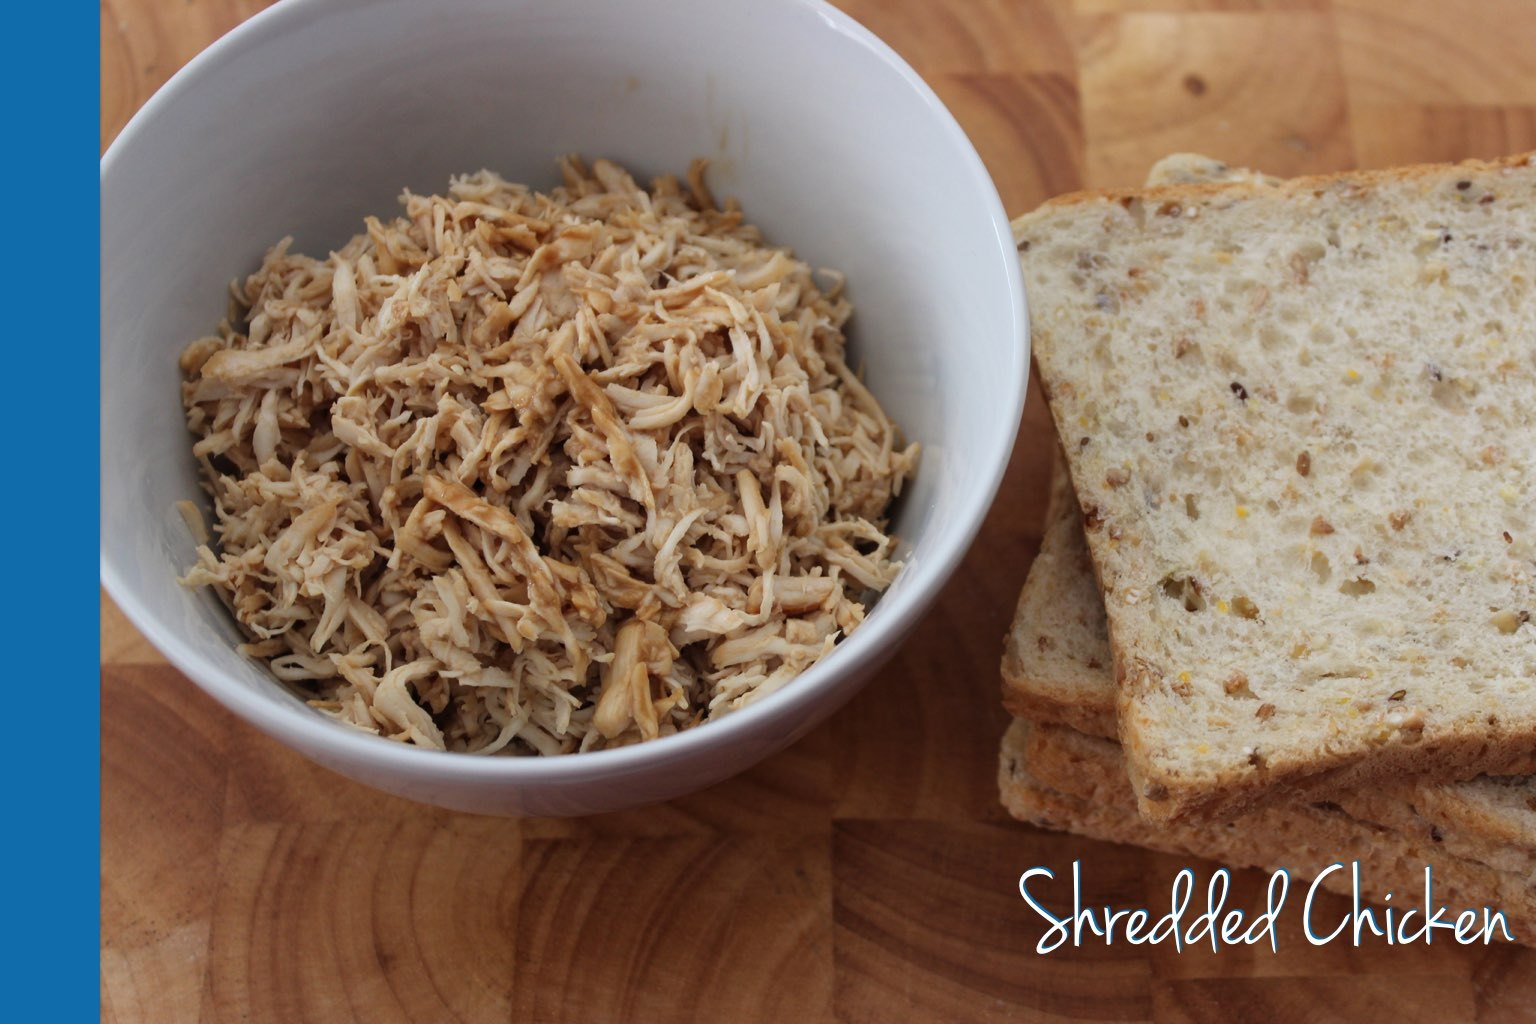 Shredded Chicken_1